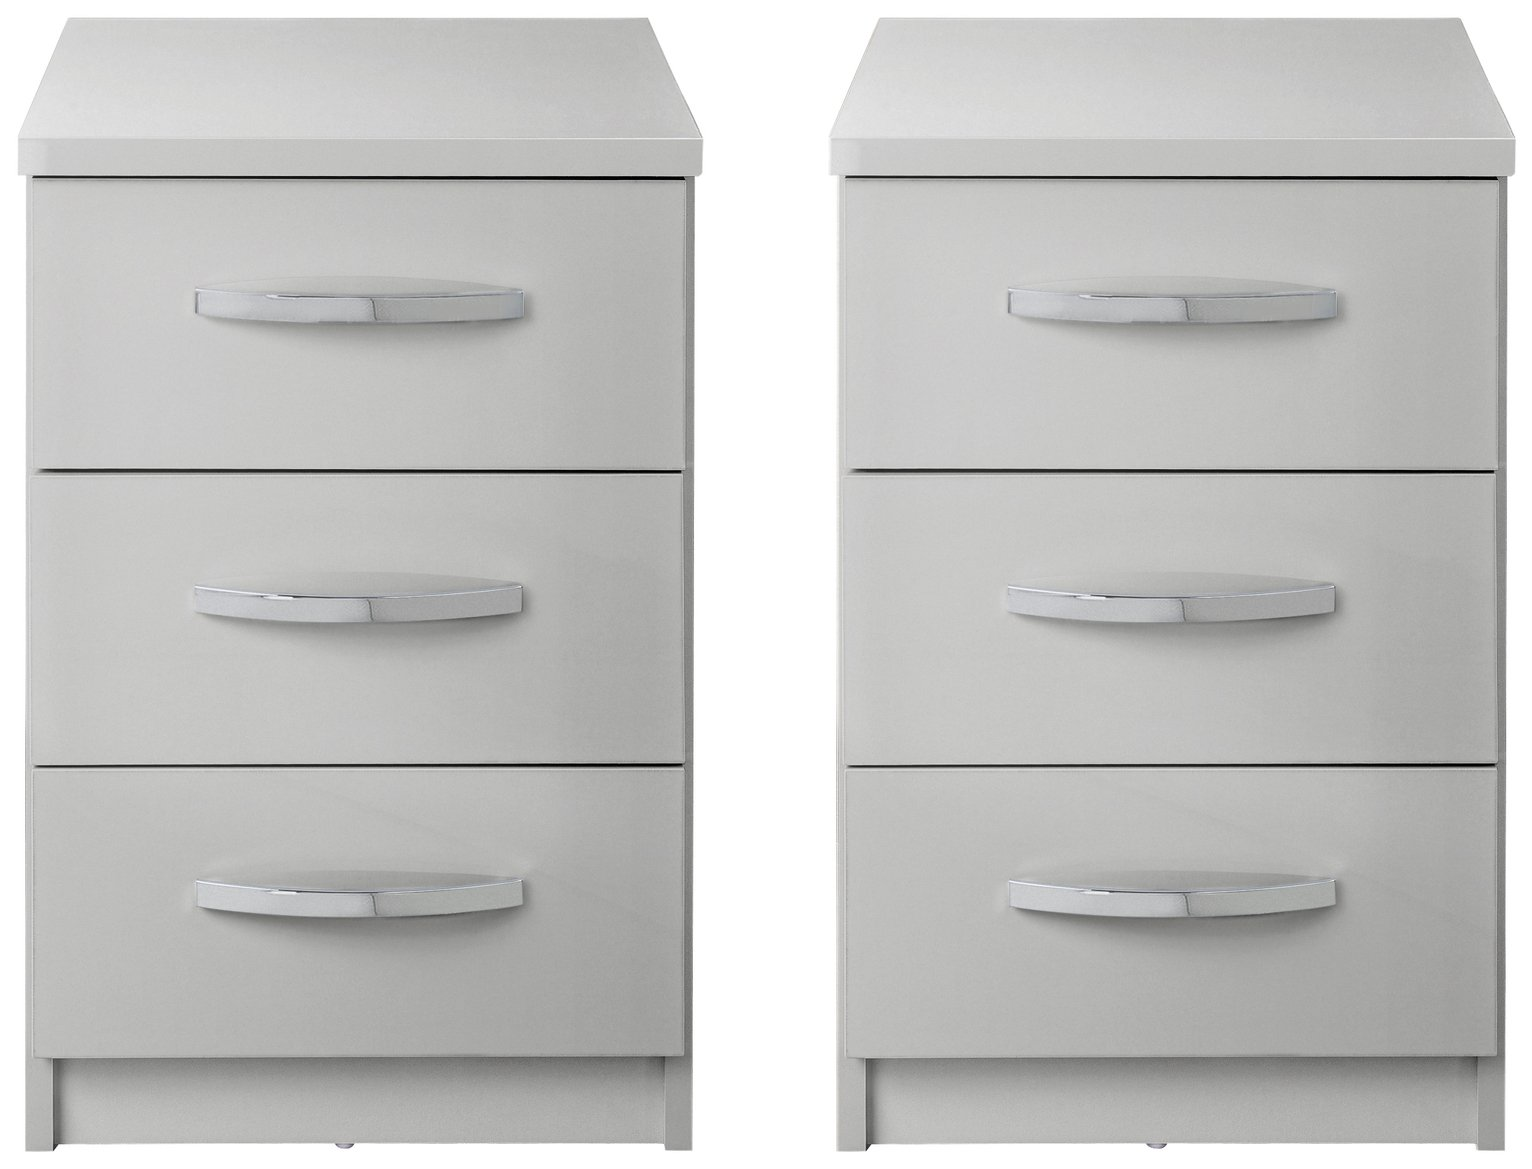 Argos Home New Hallingford 2 Gloss Bedside Chests